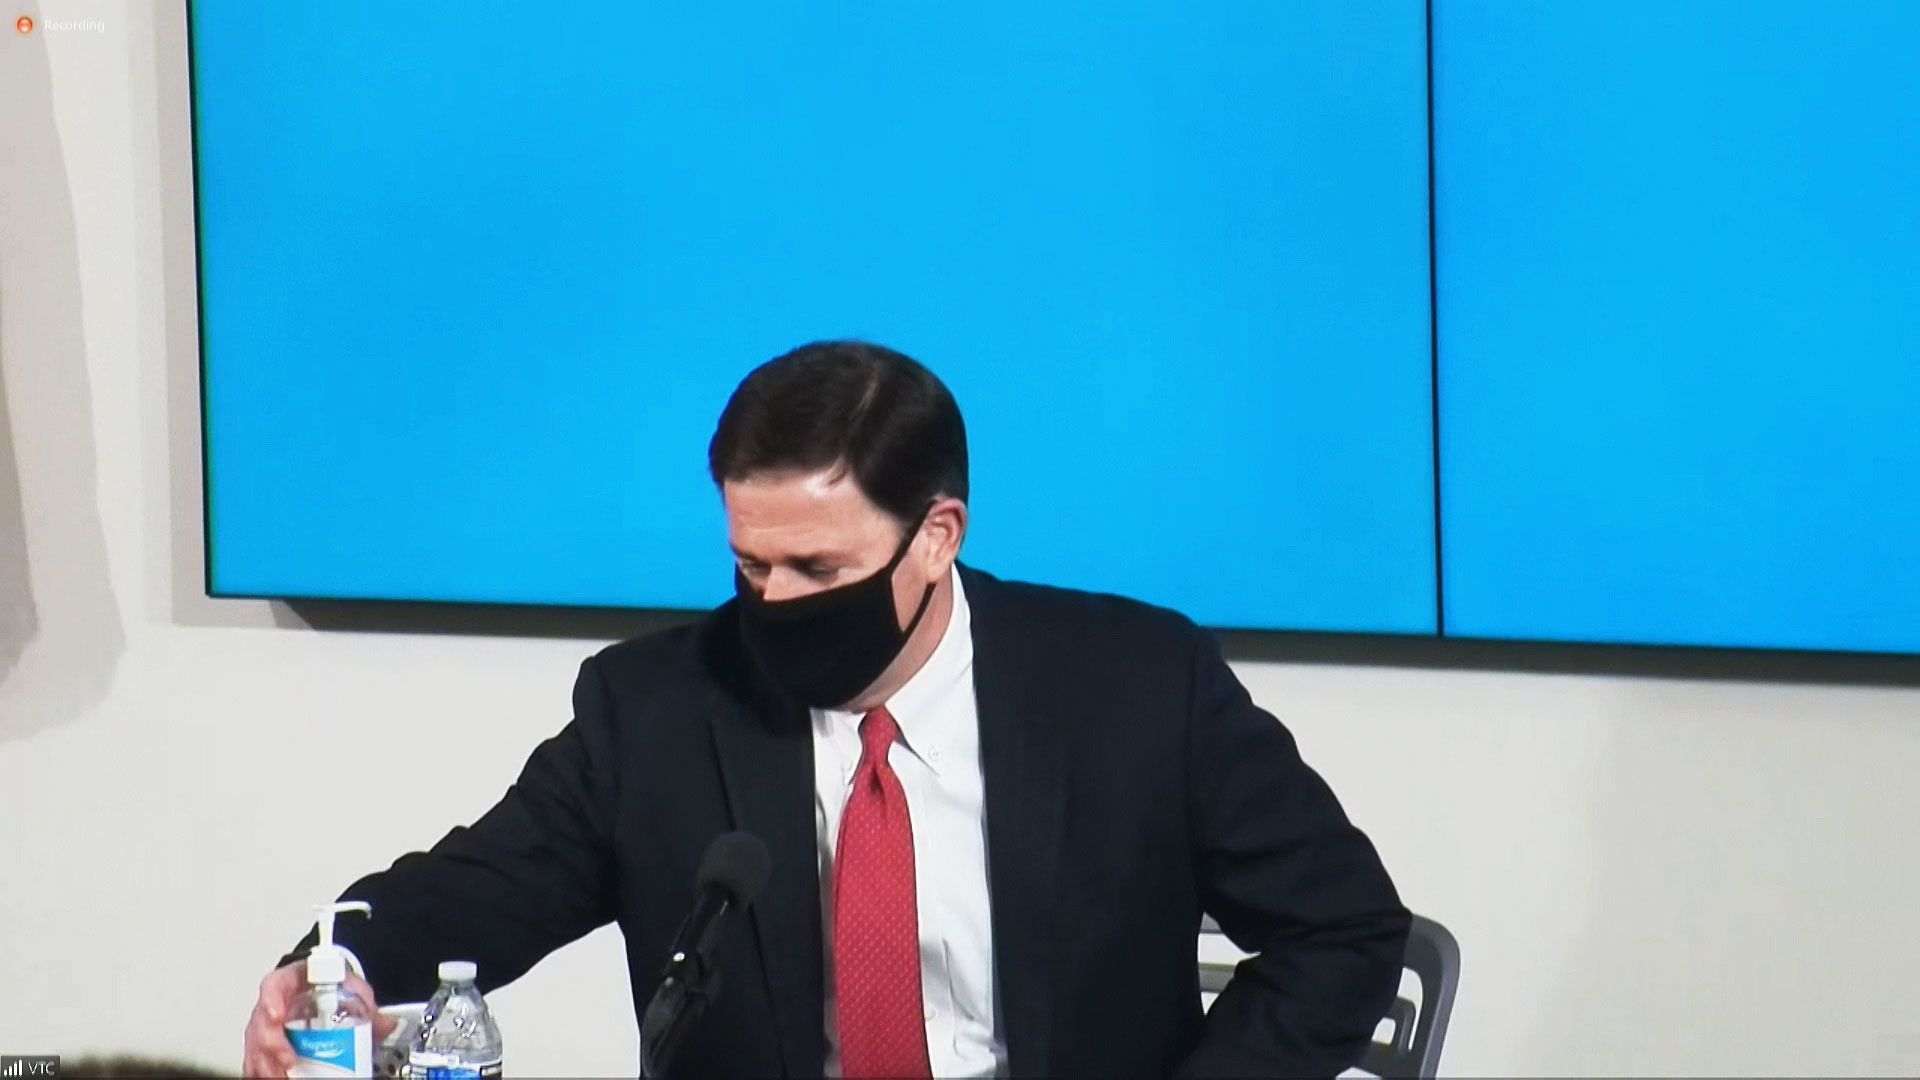 Arizona Gov. Doug Ducey wears a face mask during a news conference in Phoenix on June 18, 2020.